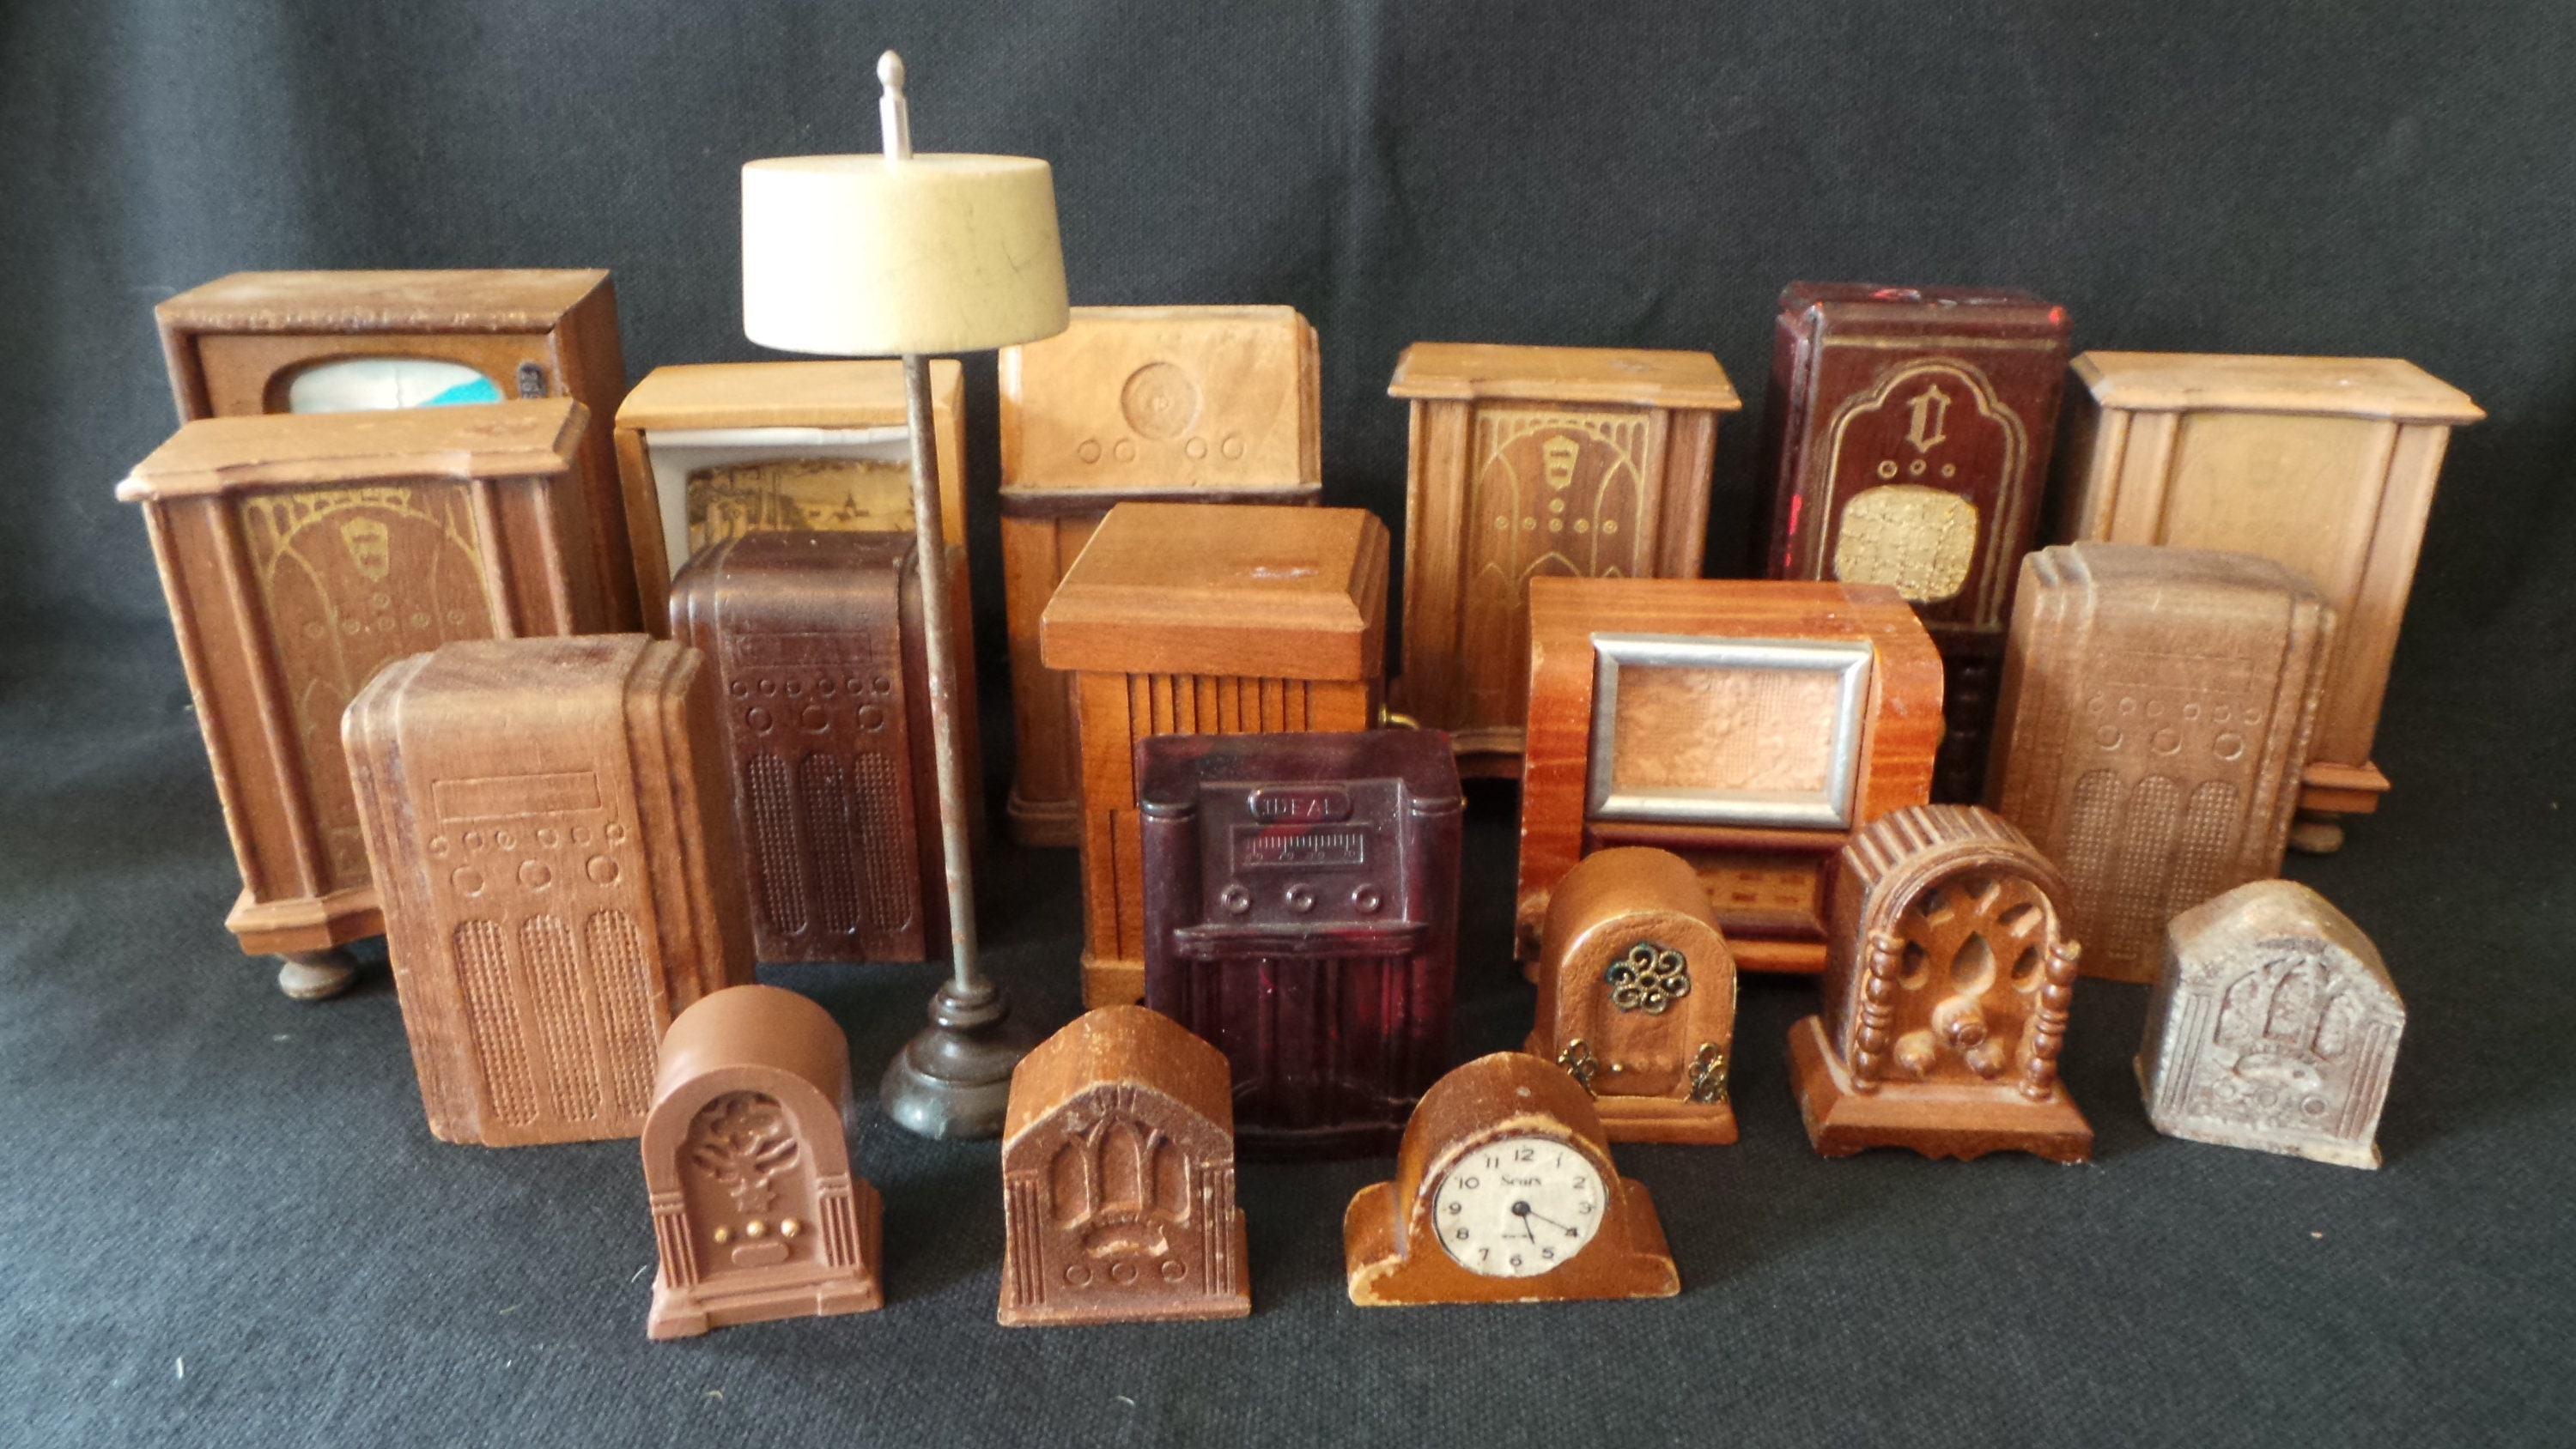 SALE HUGE Lot Antique Vintage Dollhouse Miniature Wood TV Television Radio  Cabinet Clock Lamp Decor Furniture Fun And Games Brown Wood